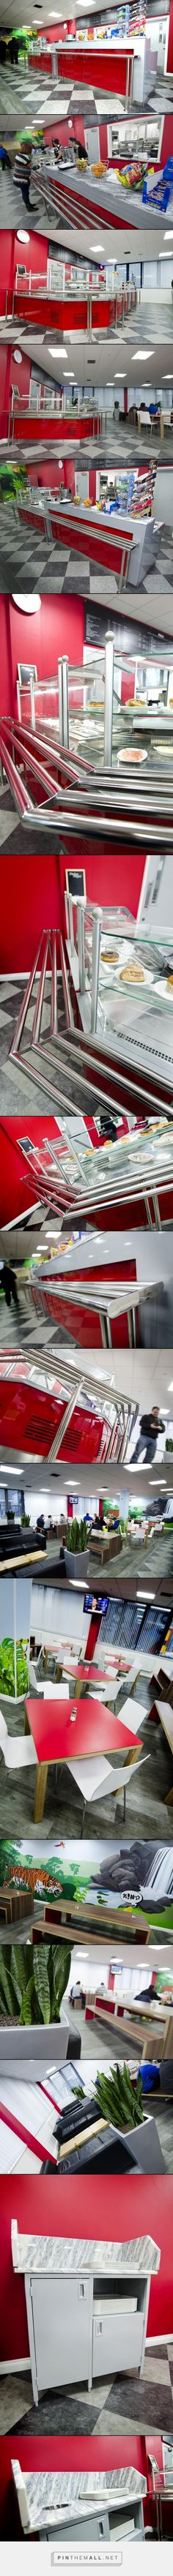 canteen design catersales interior design classes london #Bromley #Canteen #DisplayCounter #RedInterior #Alluminium #LacquerFinish  #StainlessSteel #Marble #HighBar. Catersales Ltd · Coffee Shop Design ...